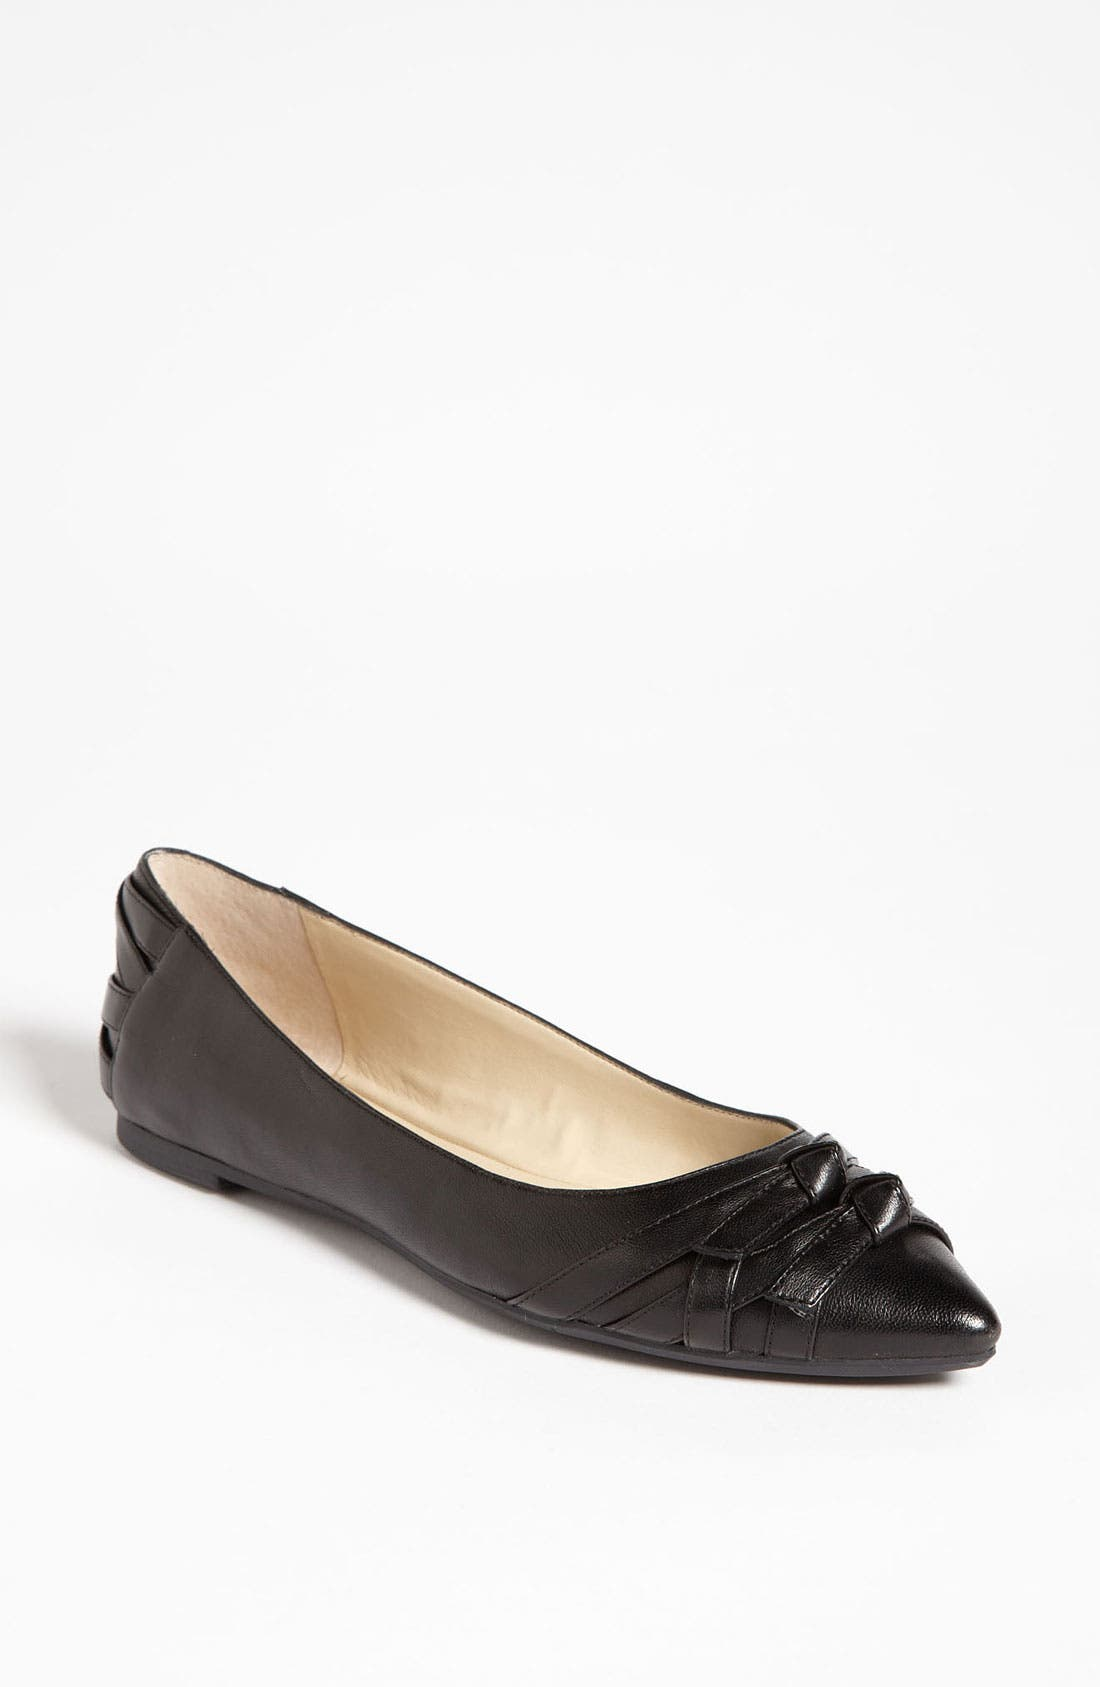 Alternate Image 1 Selected - Nine West 'Kessler' Flat